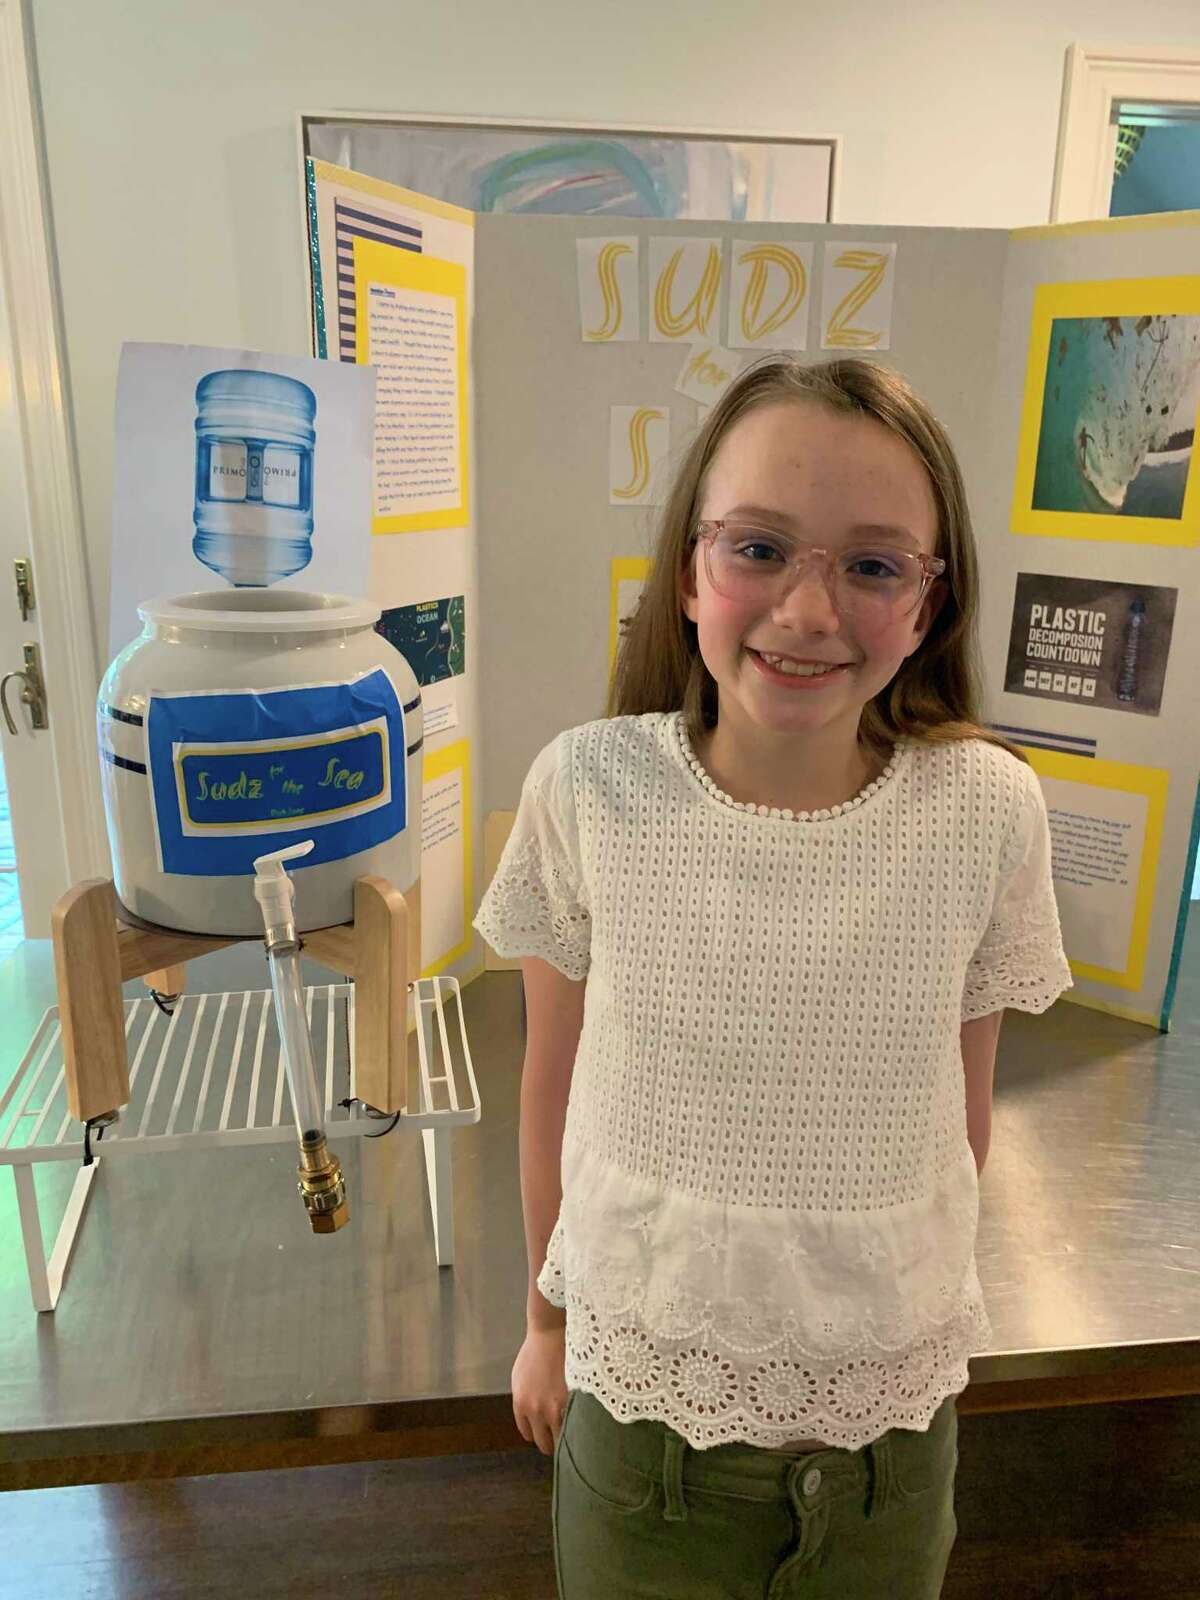 Georgia Anderson, a rising sixth grader, won state and national invention awards for Sudz for the Sea, a dispenser system aimed at reducing the amount of plastic reaching the world's oceans.